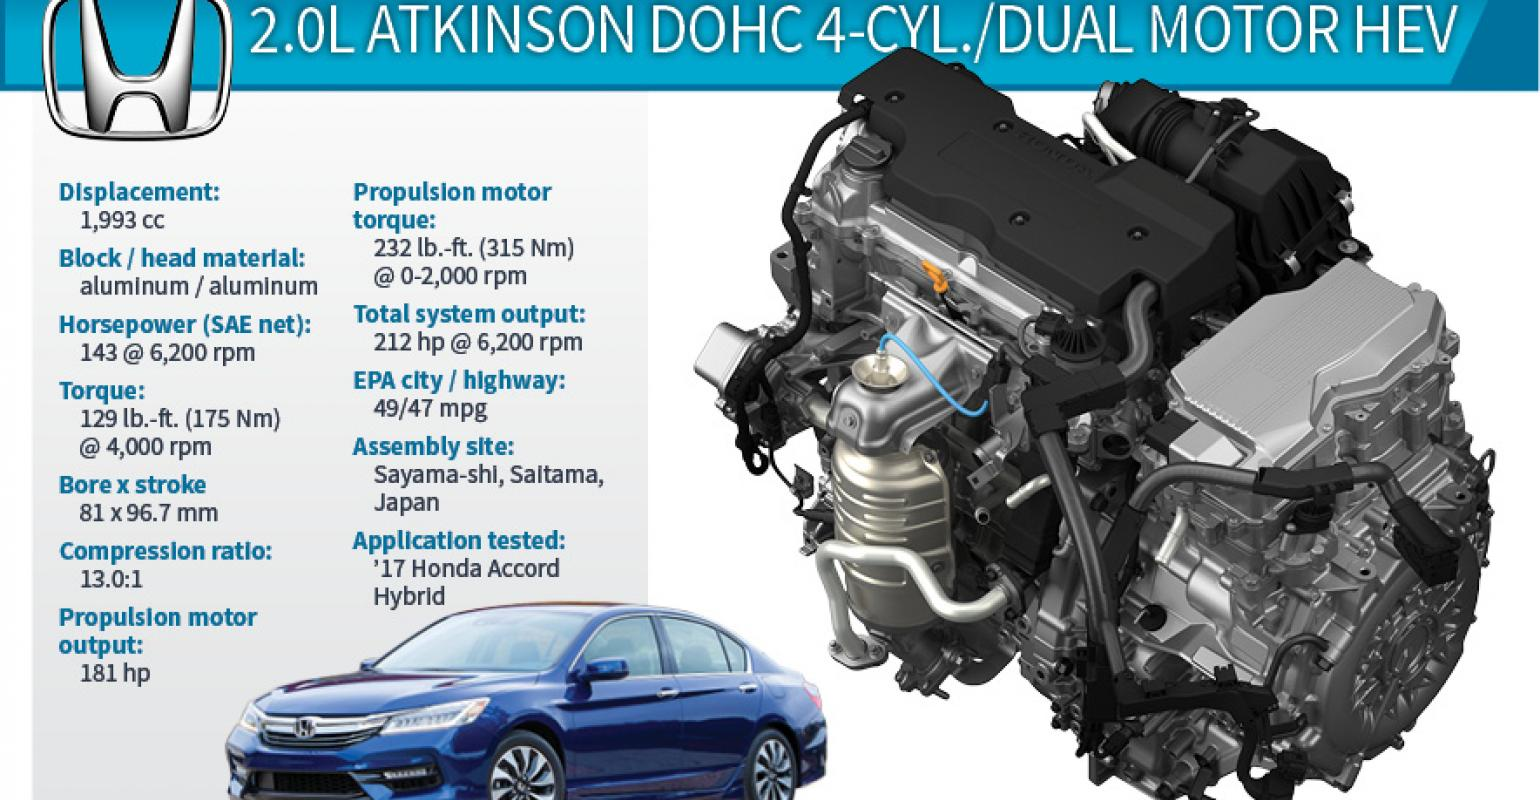 2017 Wards 10 Best Engines Winner Honda Accord 20l I 4 Two Motor Hybrid Car Engine And Transmission Diagram Cyl Dual Hev